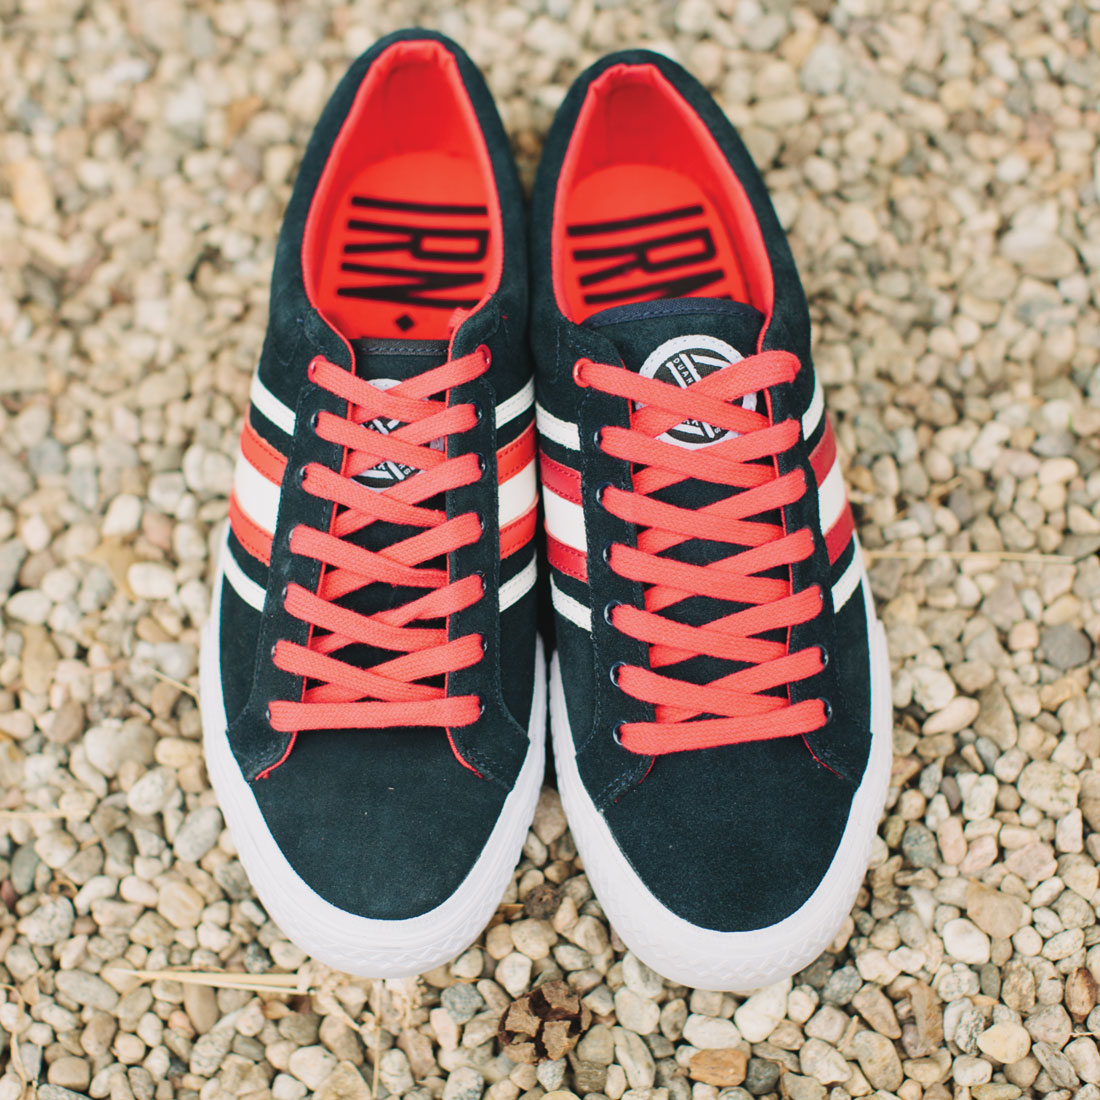 duane-peters-clasher-low-vulcanized-sneaker-navy_red_white1100